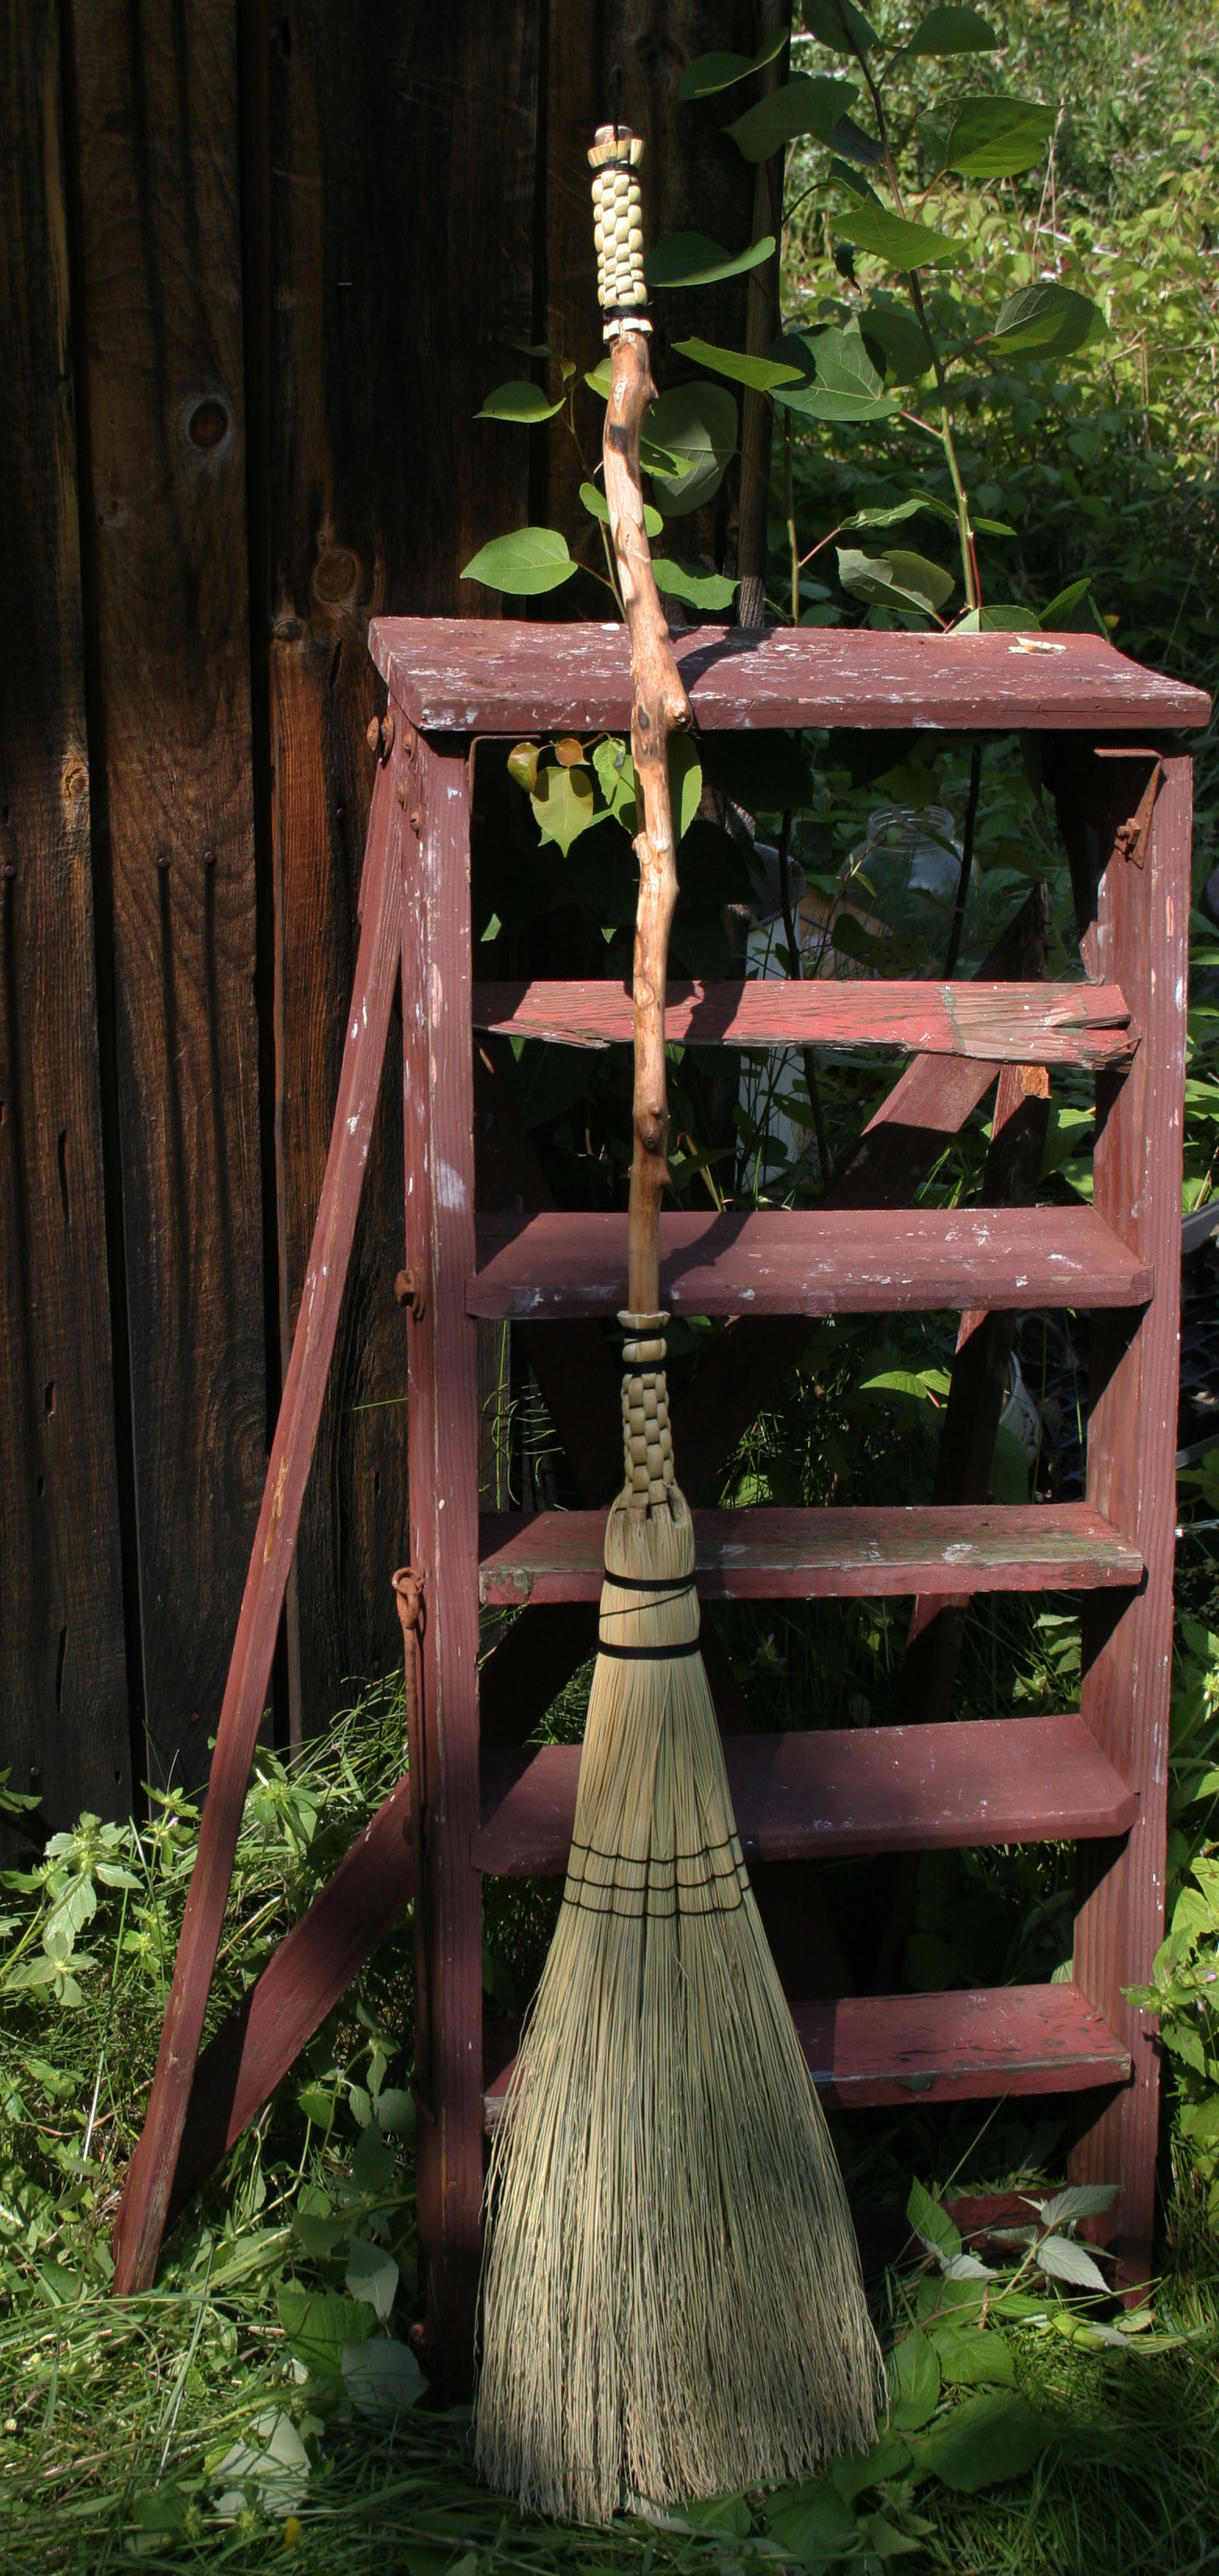 Making brooms is still a staple